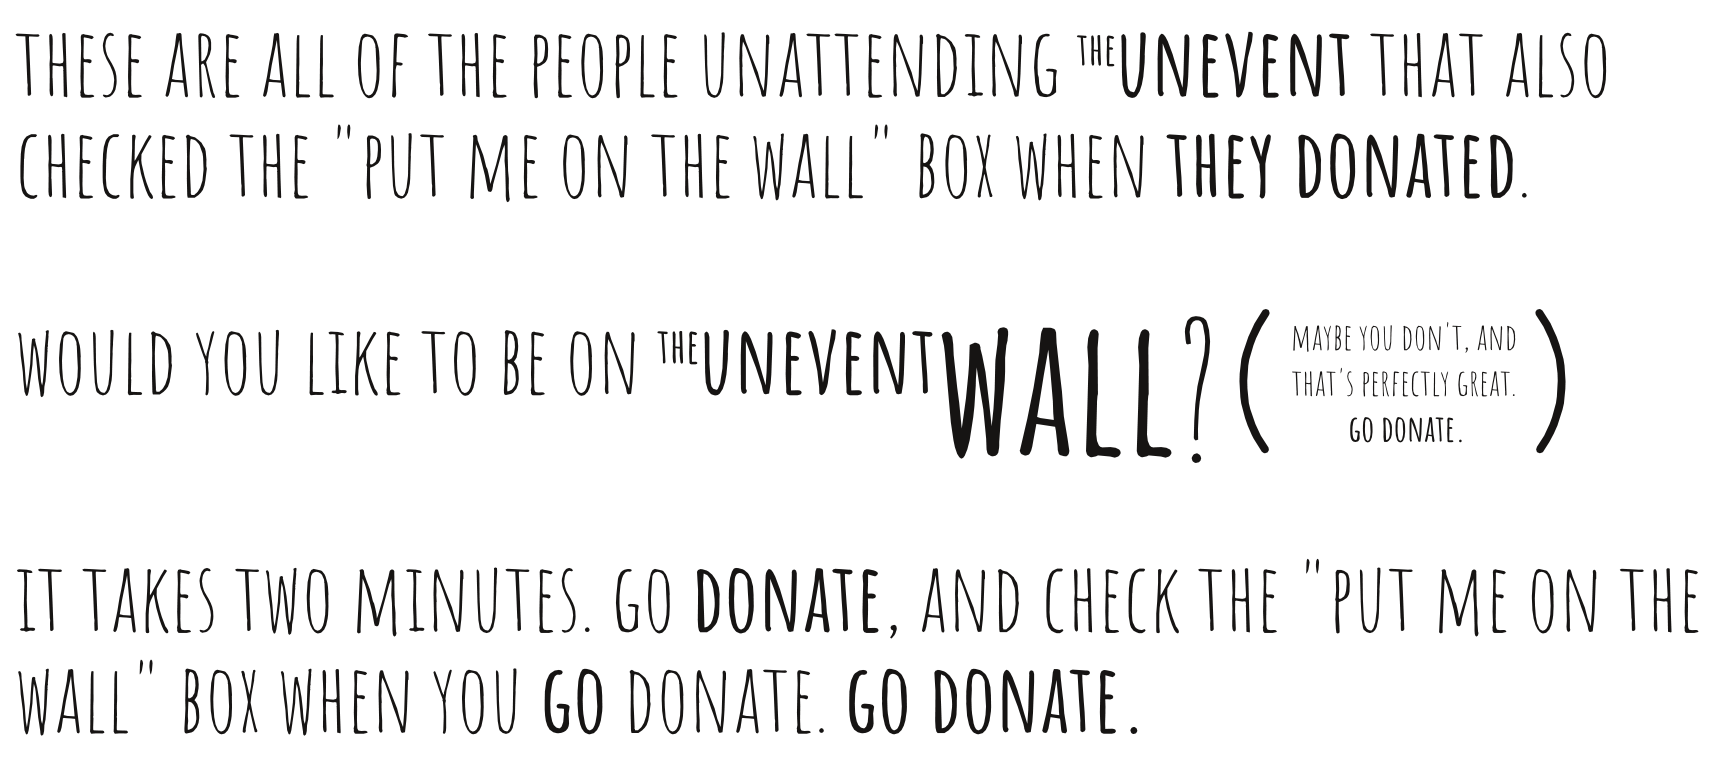 thewall-text.png